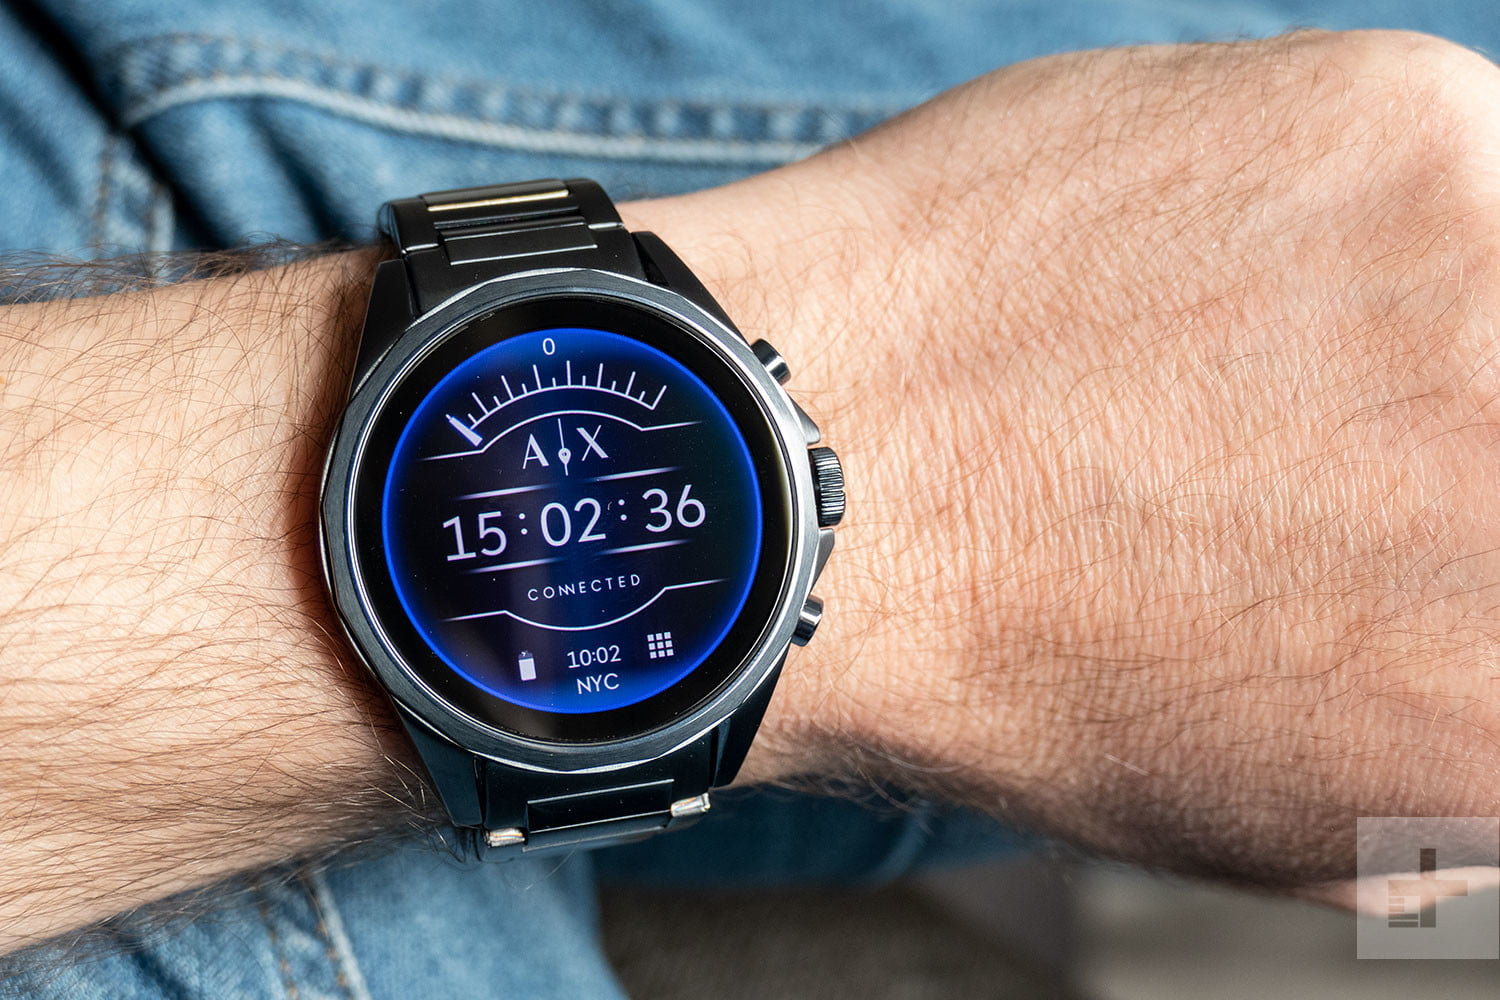 78083a91e Armani Exchange AX Connected Review | Digital Trends